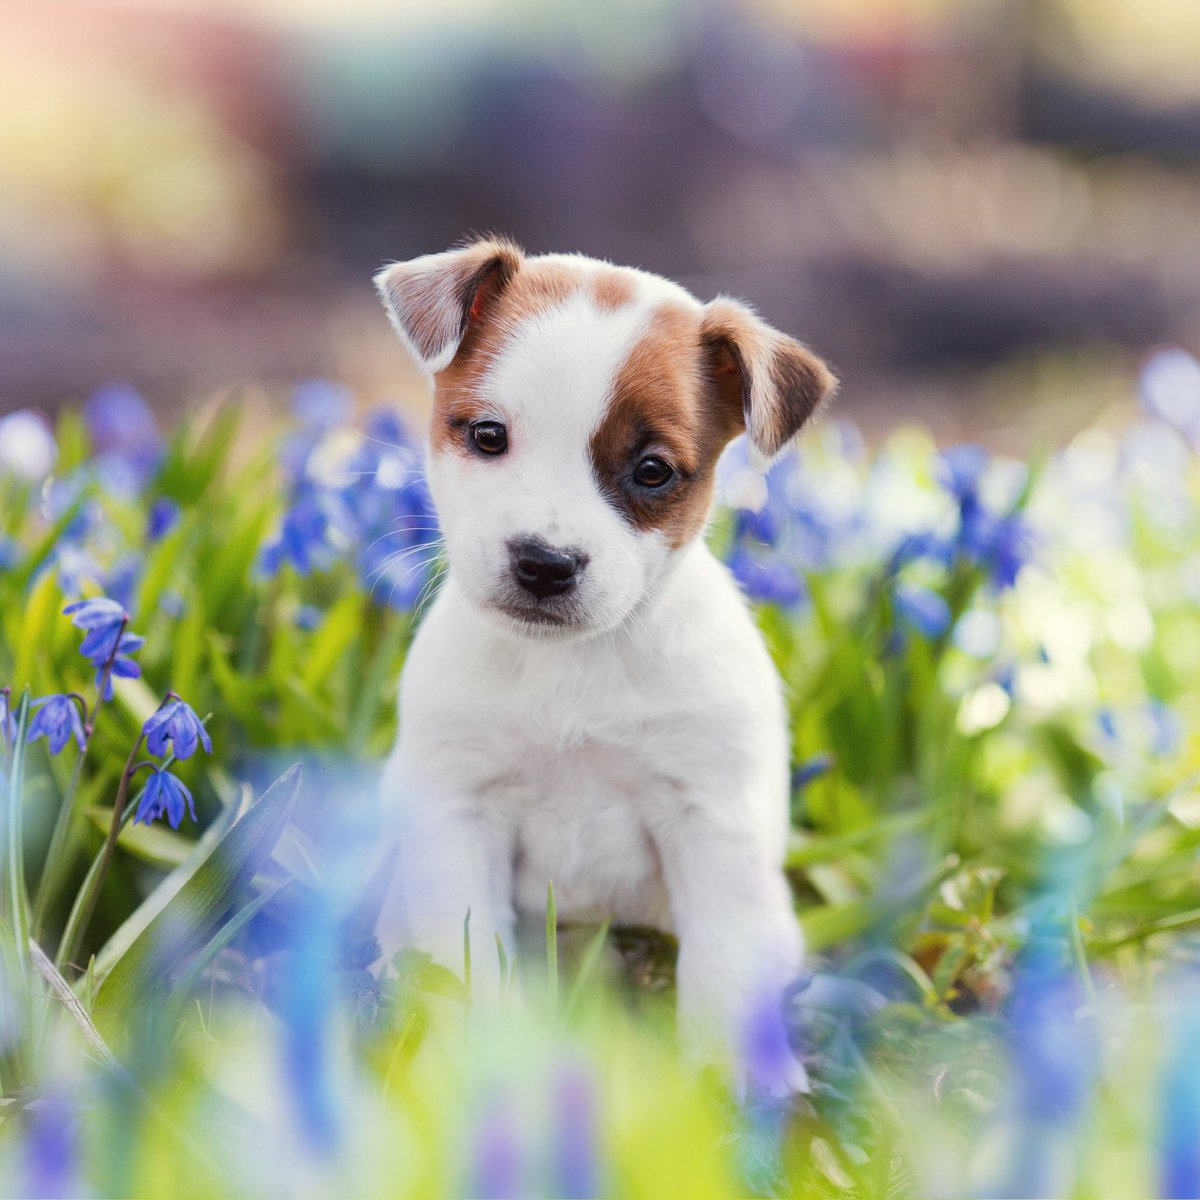 Cute Jack Russell Terrier Puppy 869857 Hd Wallpaper Backgrounds Download